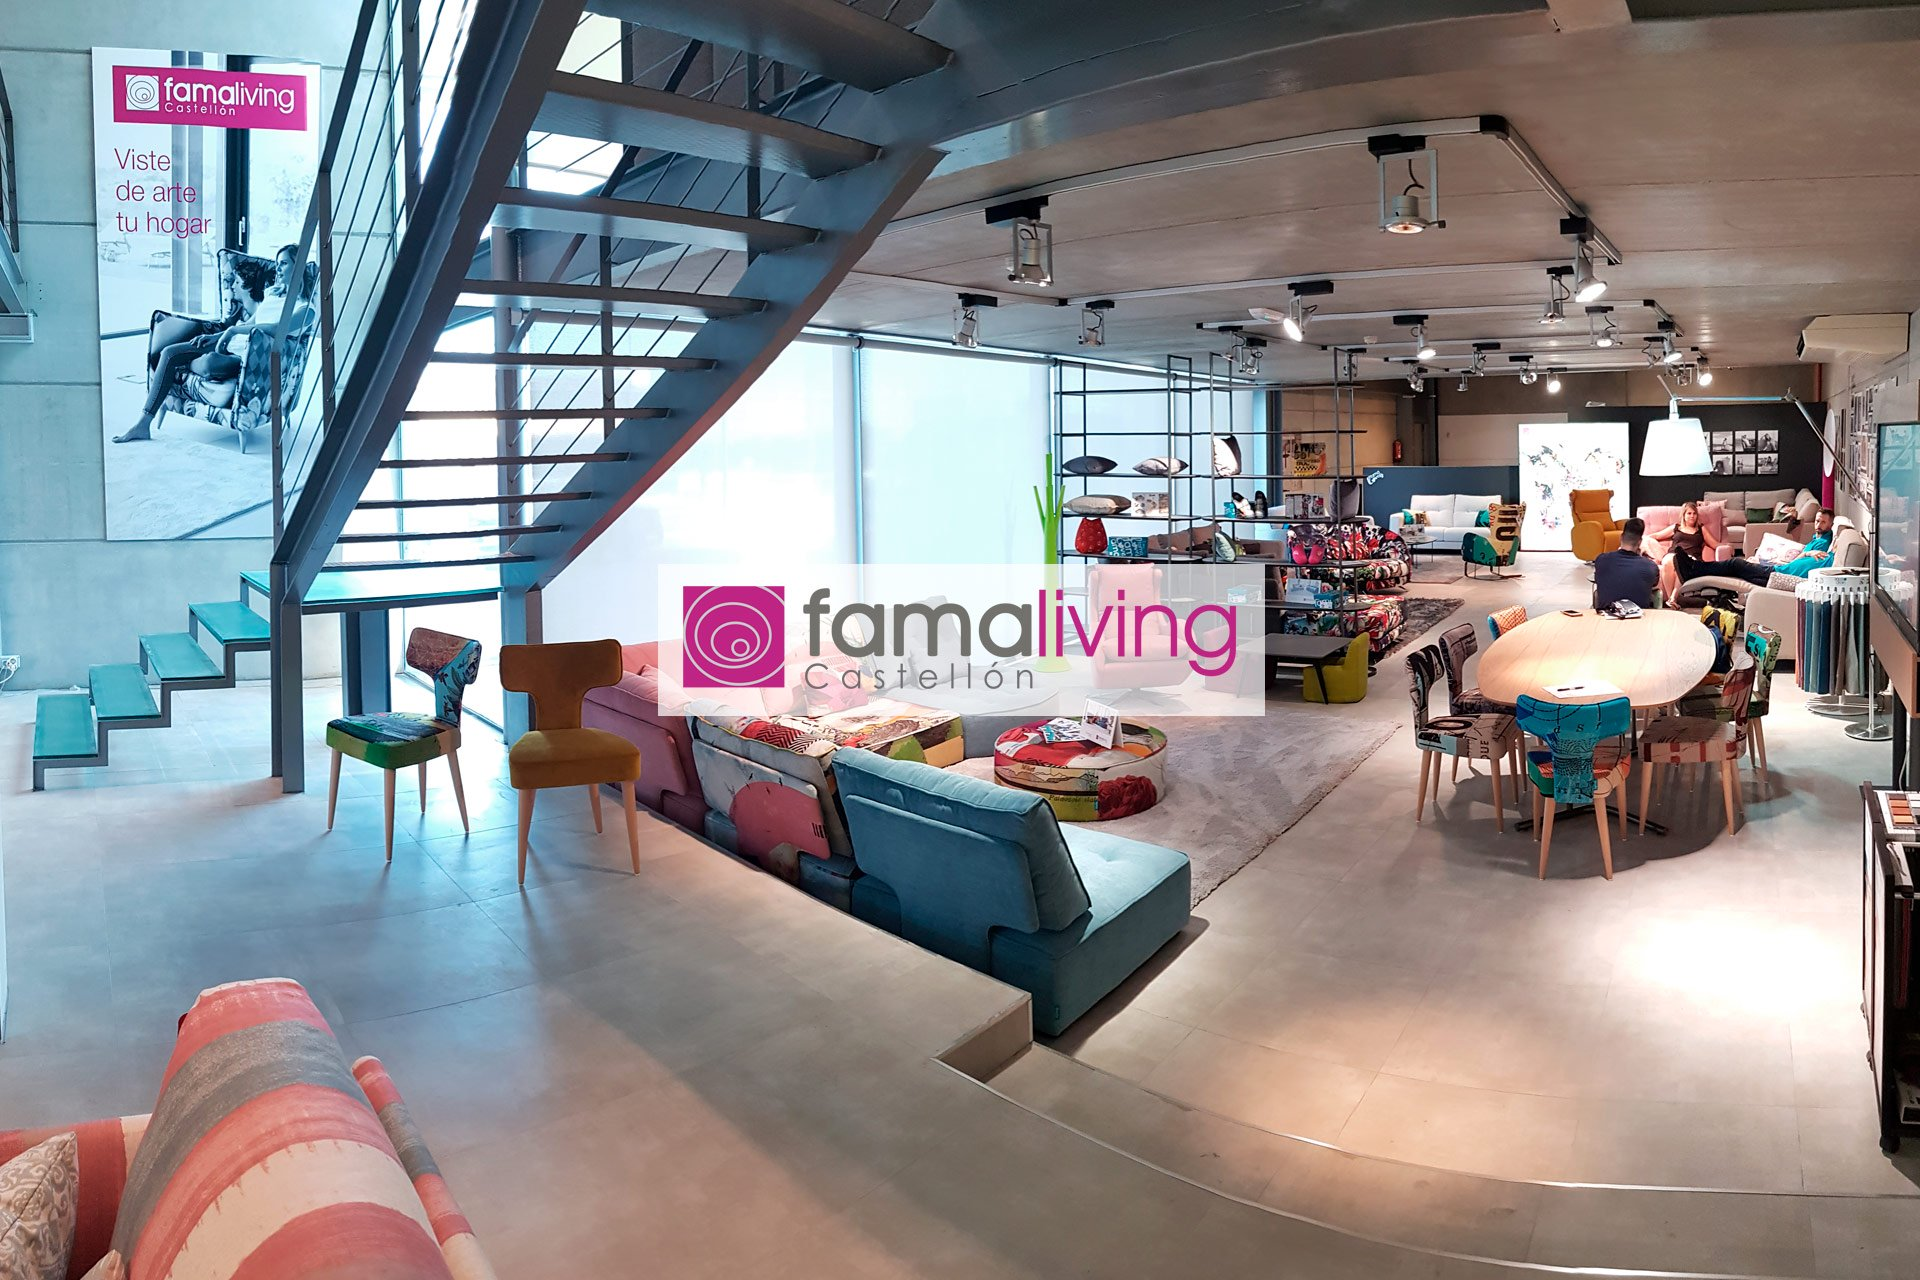 https://www.famaliving.com/castellon-en